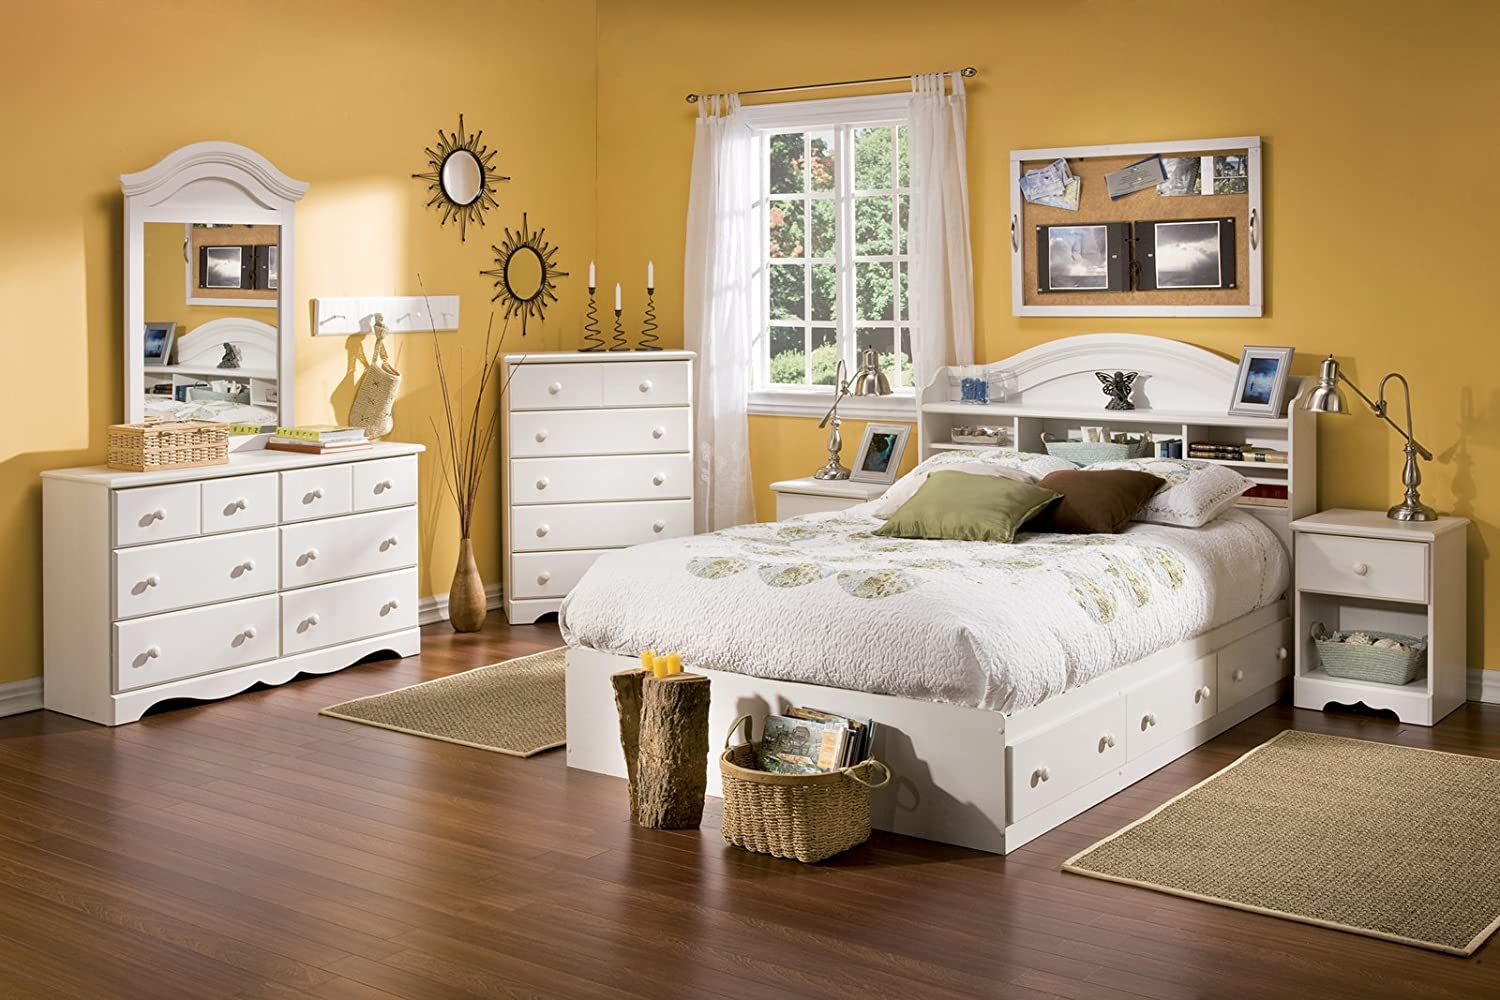 Amazon.com: South Shore Summer Breeze Collection 6-Drawer Dresser ...